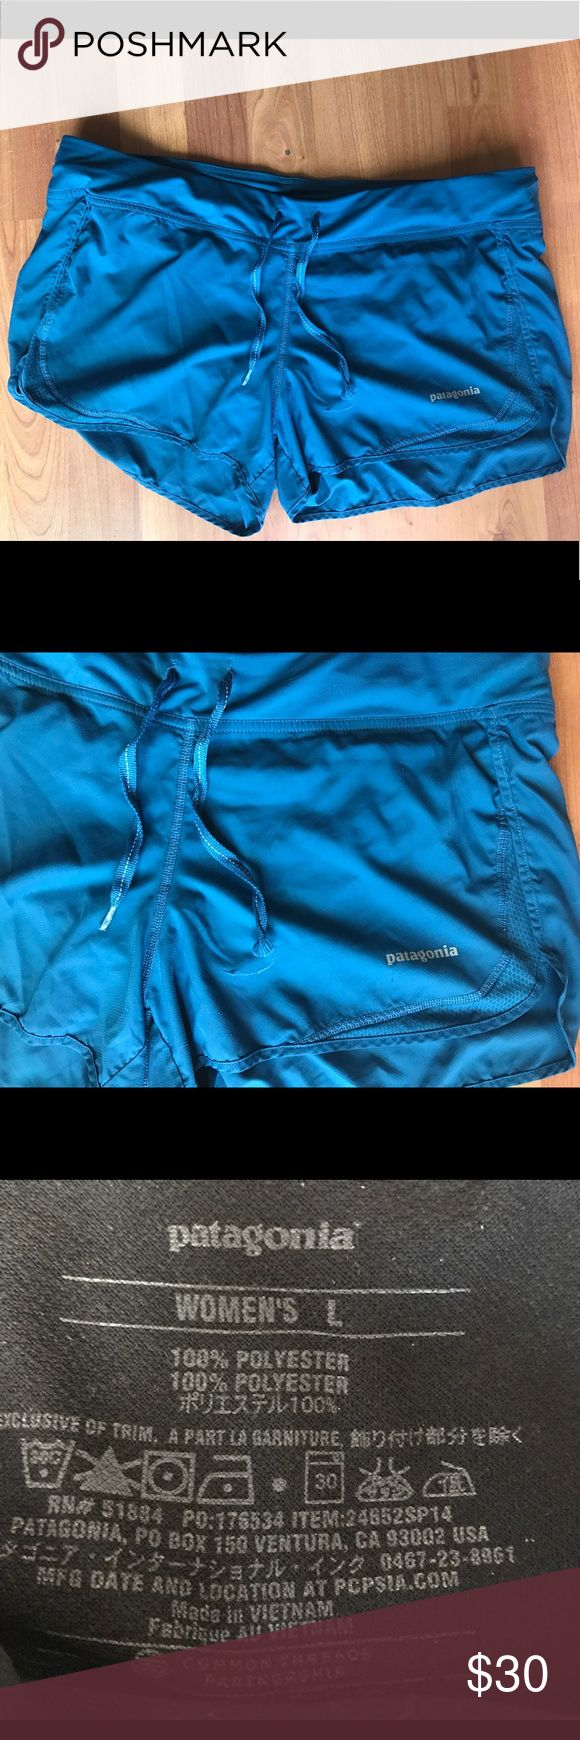 Women's Patagonia shorts Great for working out, going to the beach/lake or just chilling. Built in underwear and pocket inside. Drawstring. Only worn twice! Patagonia Shorts